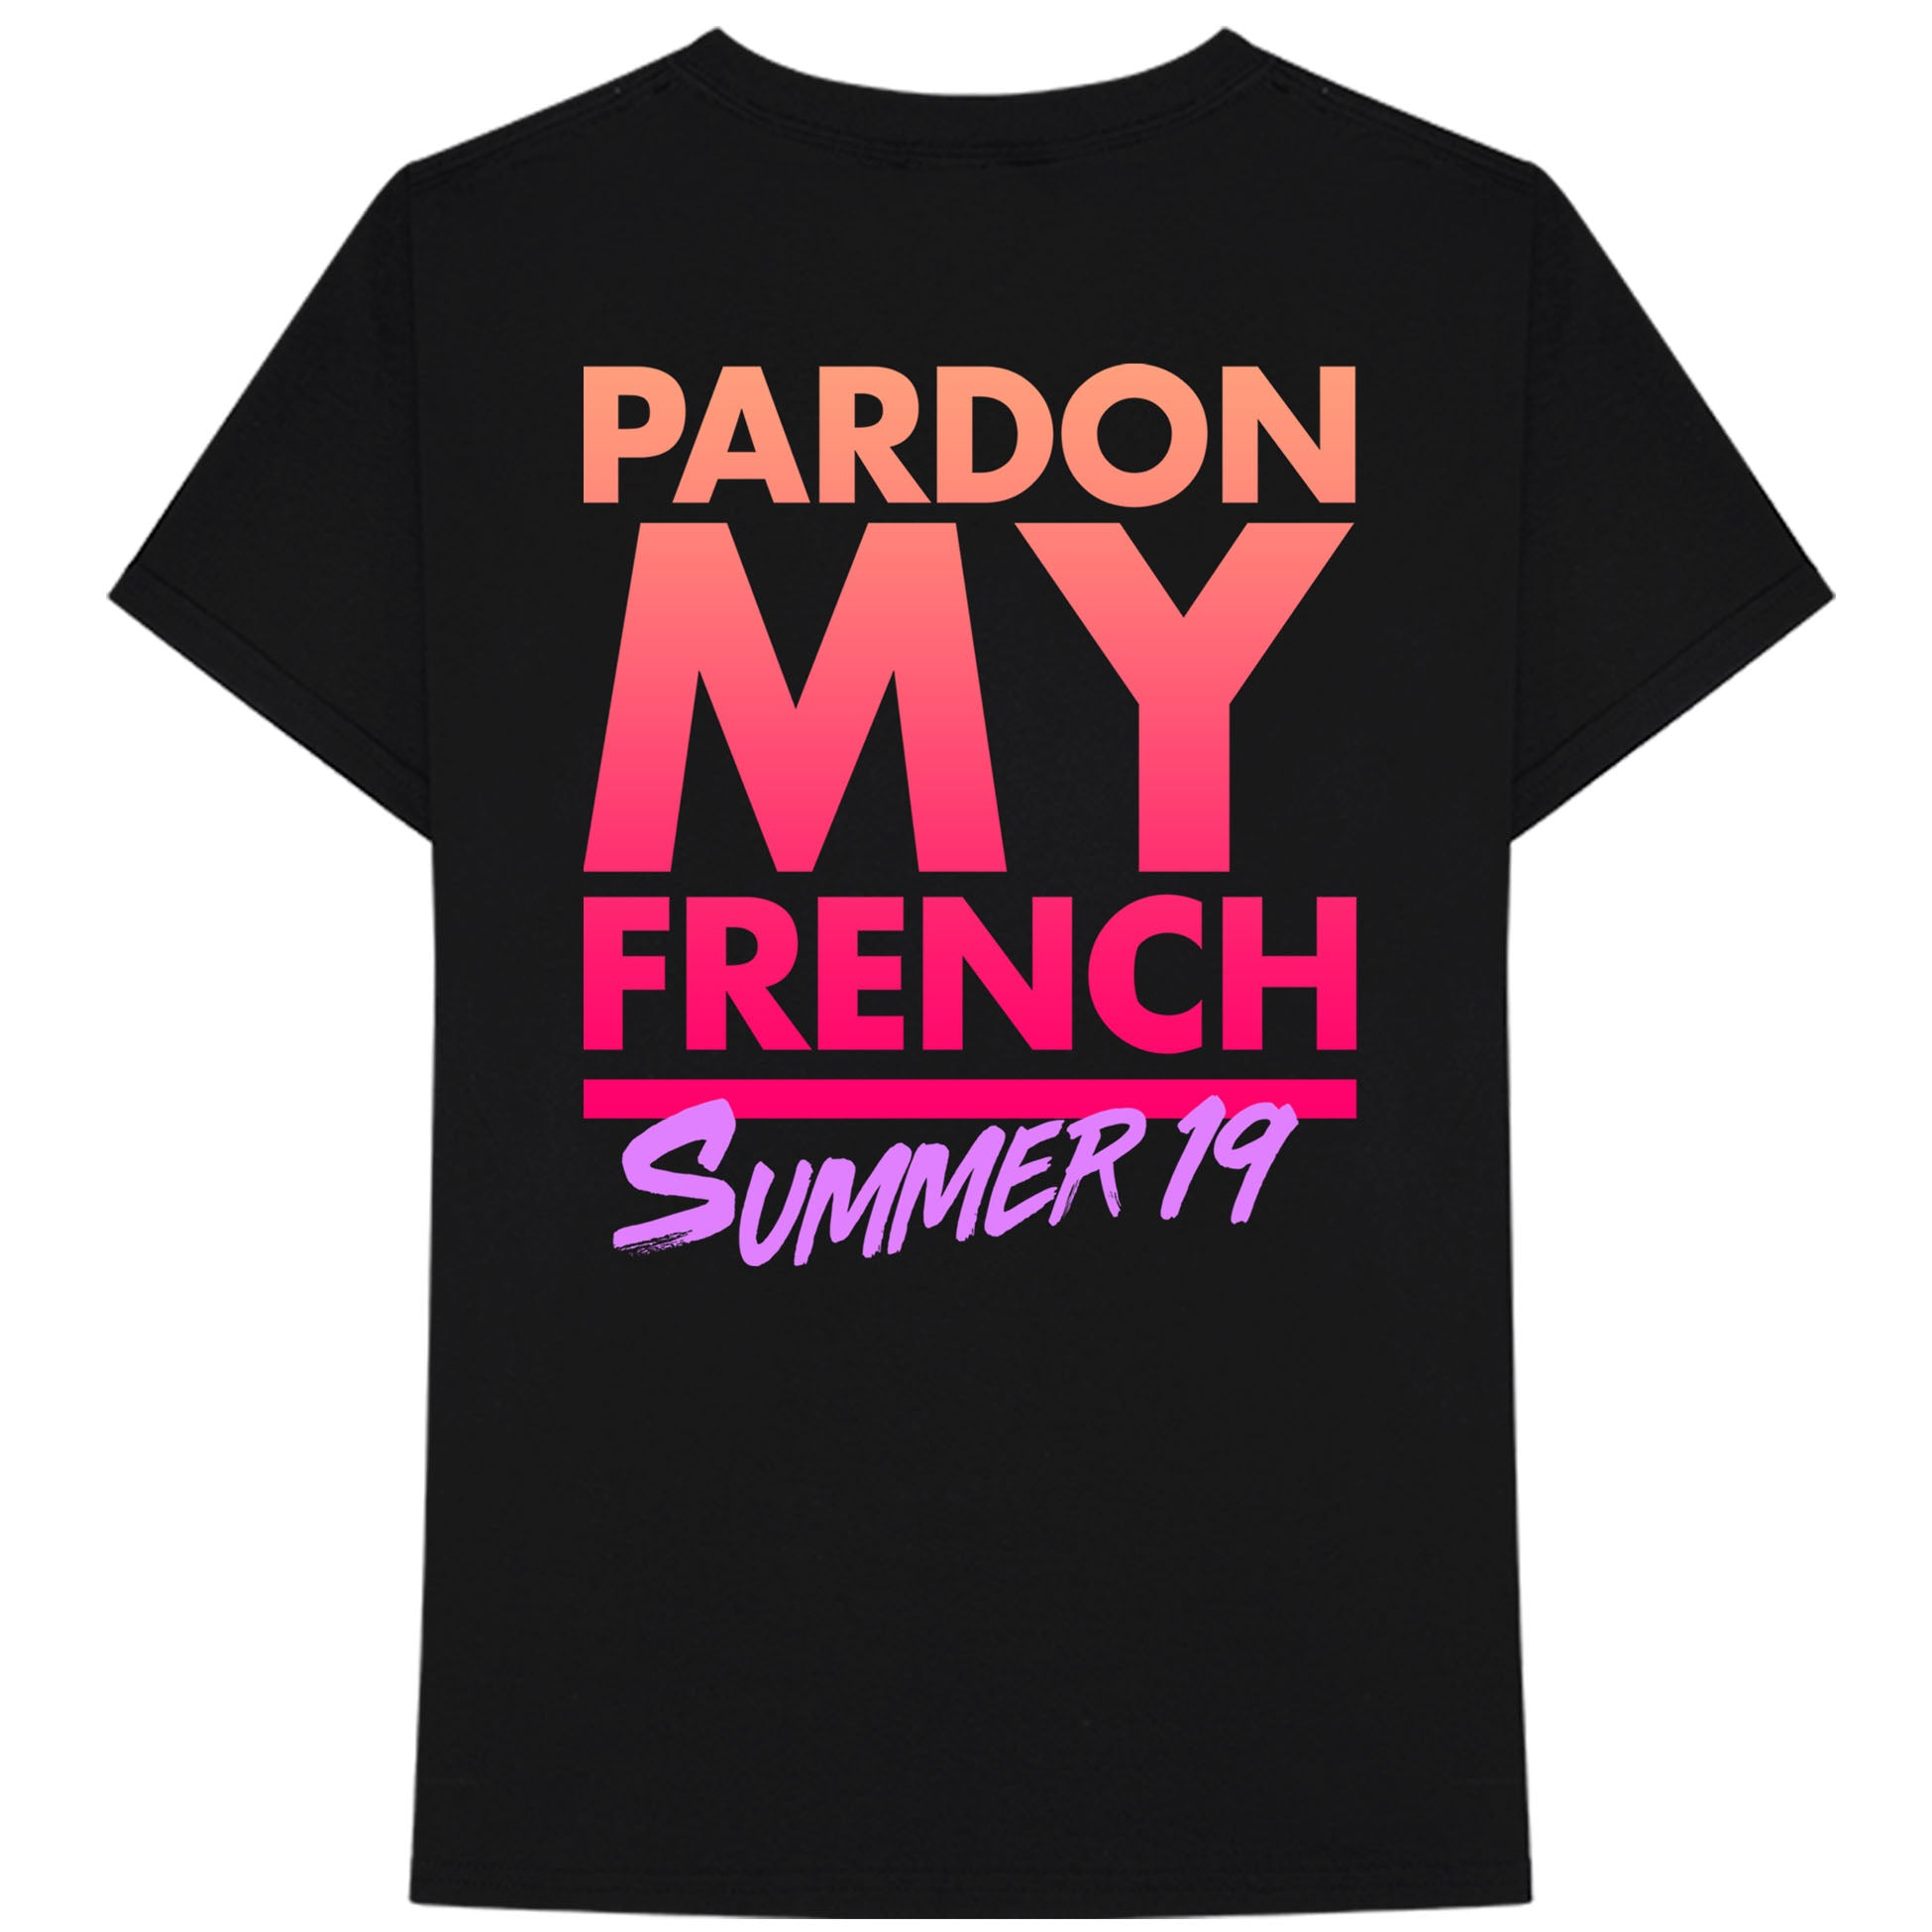 PARDON MY FRENCH SUMMER 19 BLACK TSHIRT